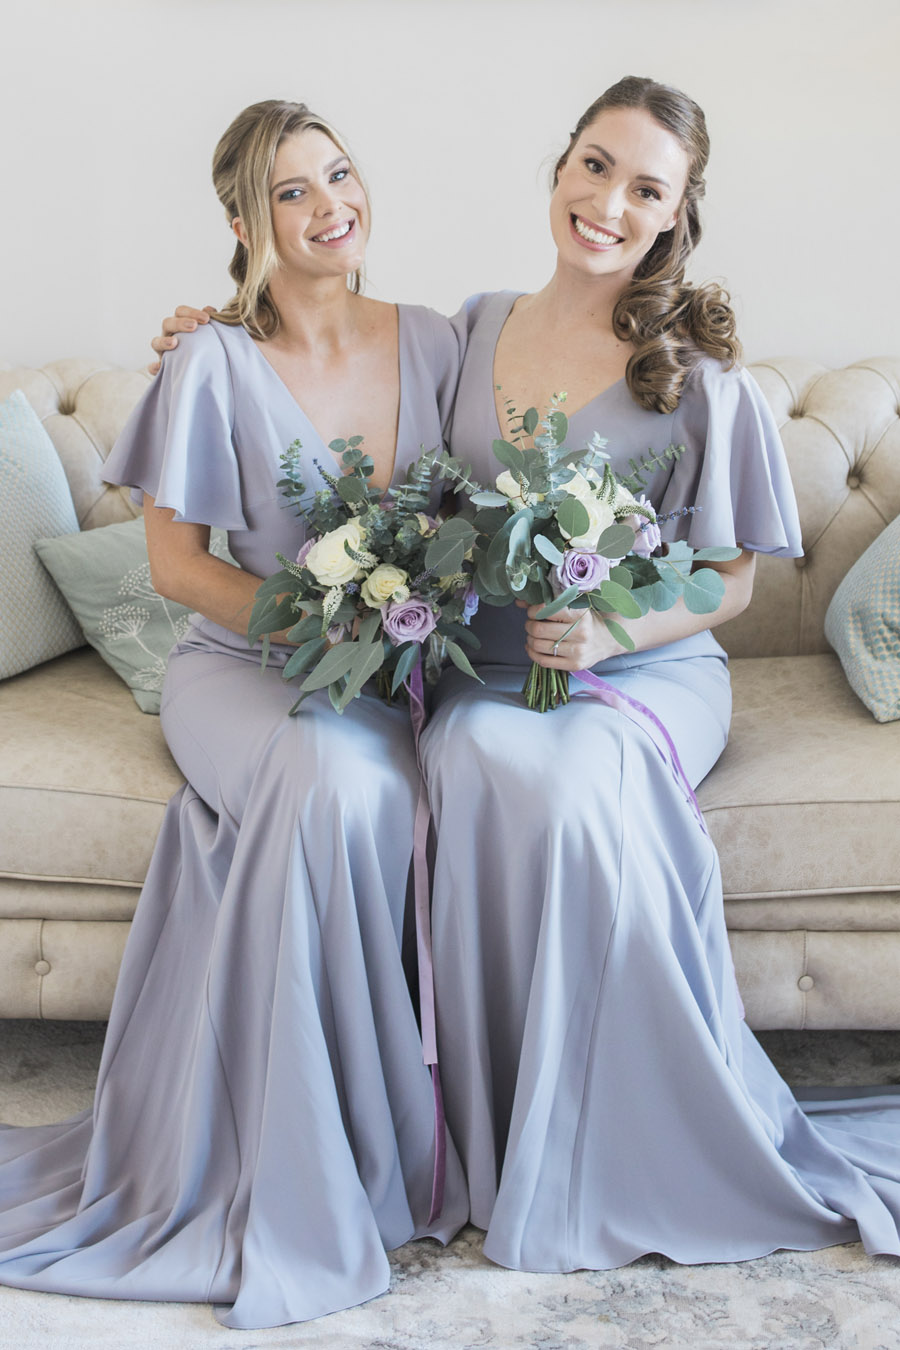 for bridesmaids everywhere, with love. Image credit Natalie D Photography (28)